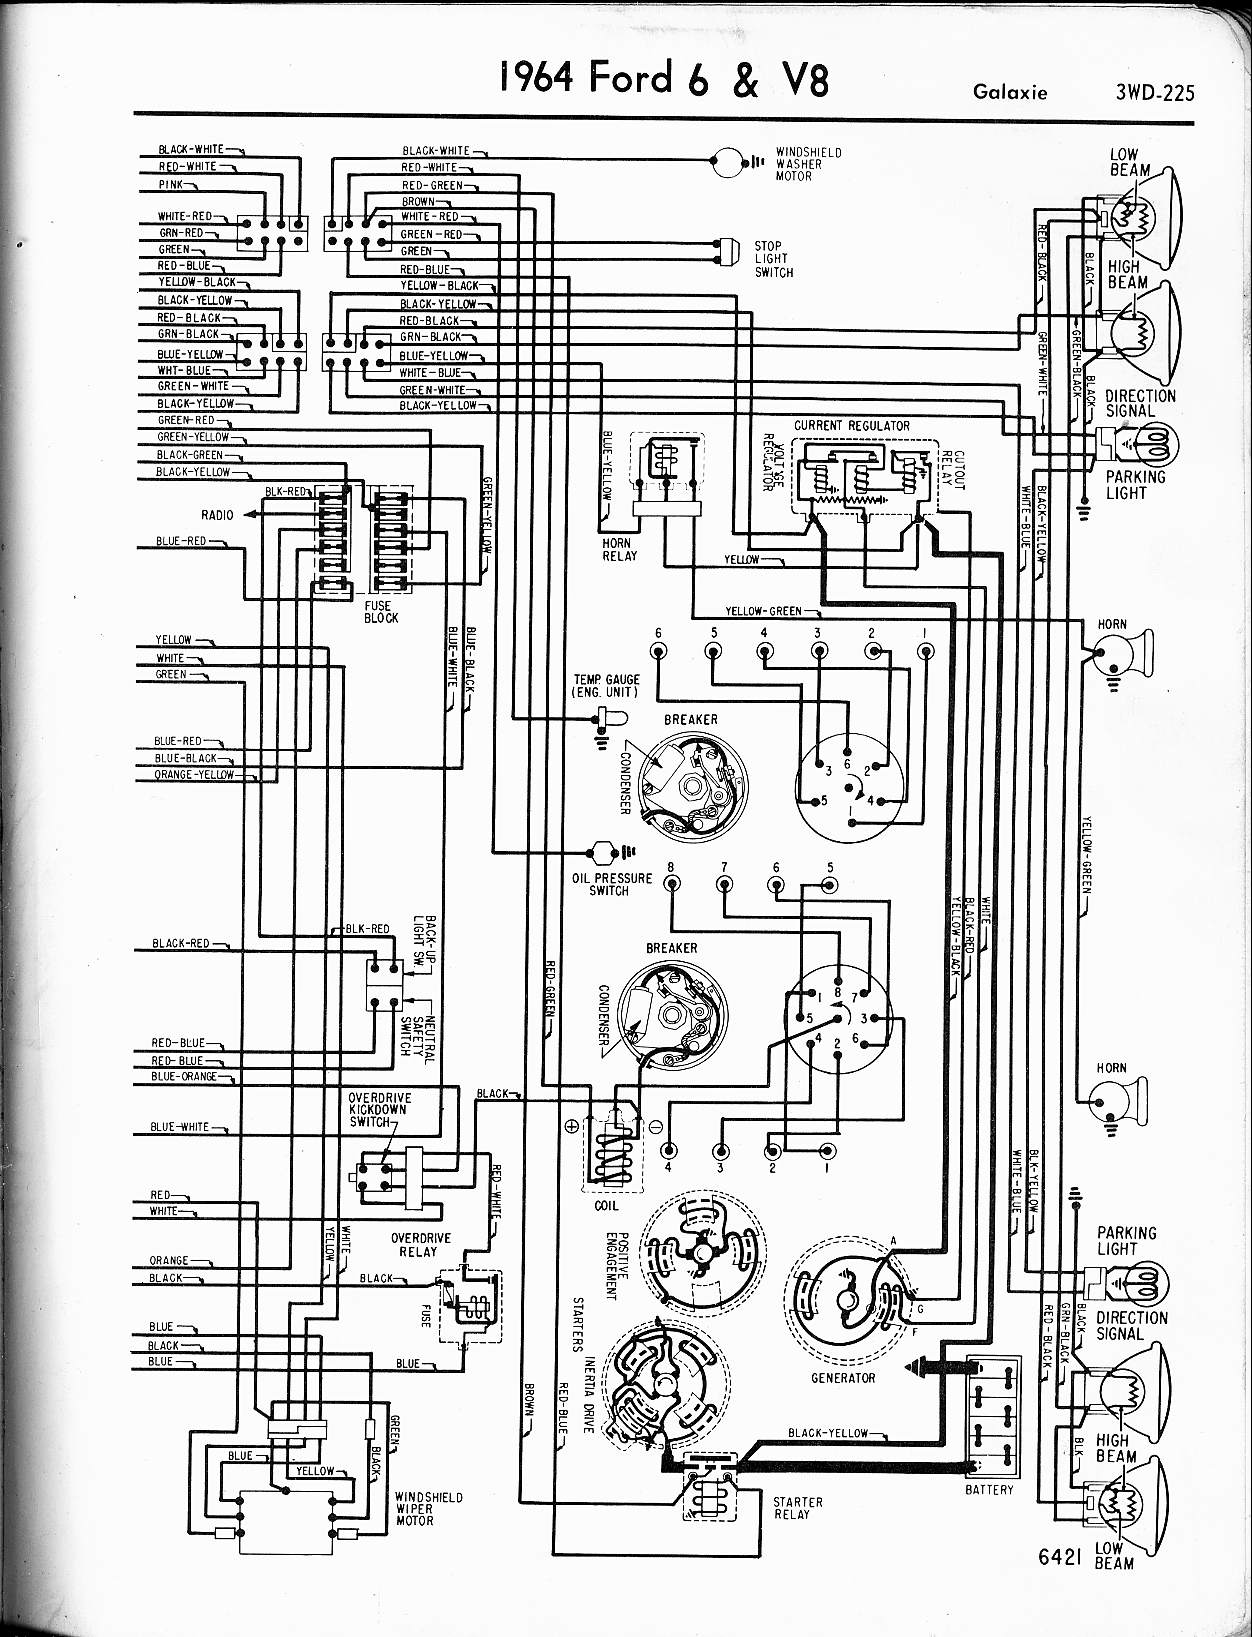 MWire5765 225 57 65 ford wiring diagrams 1963 ford galaxie fuse box diagram at soozxer.org